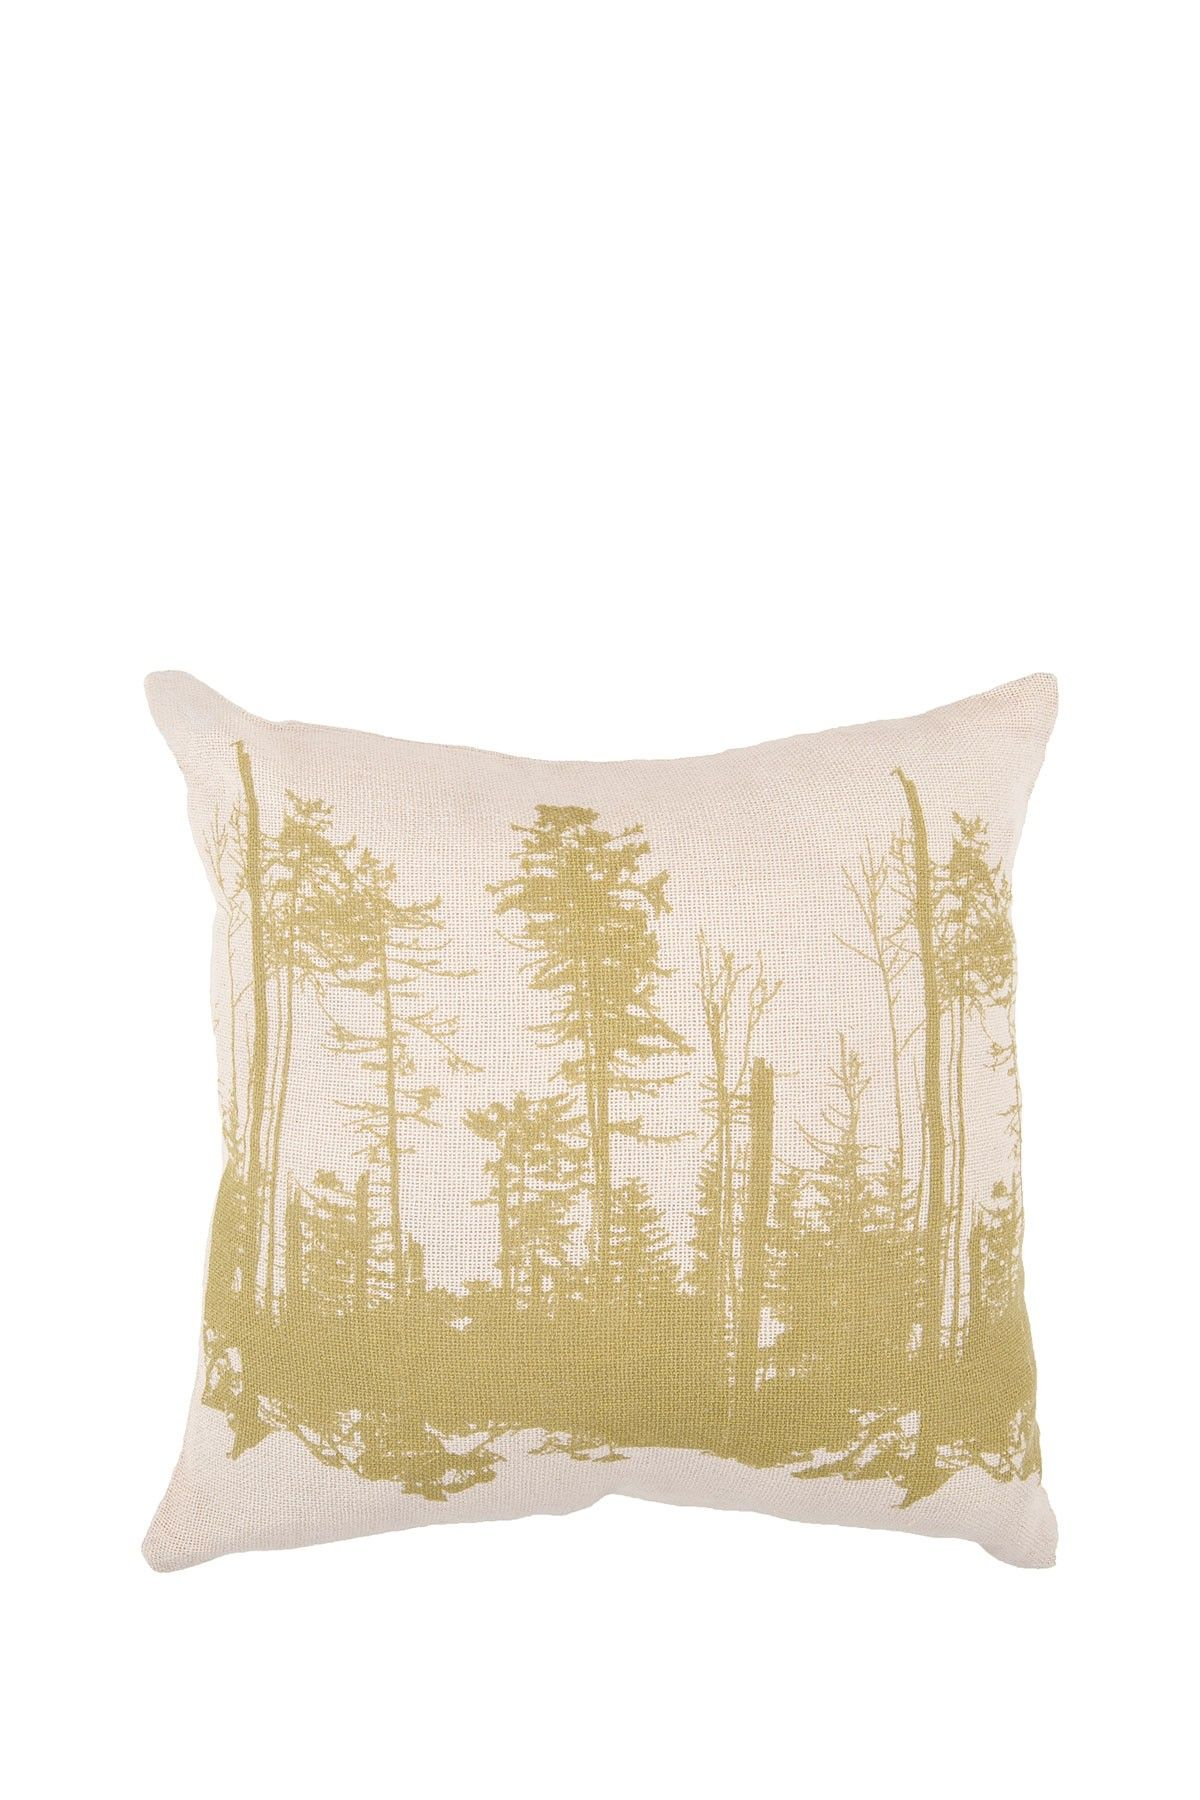 Tall Trees #Pillow - Parchment/Moss - 18in. x 18in.